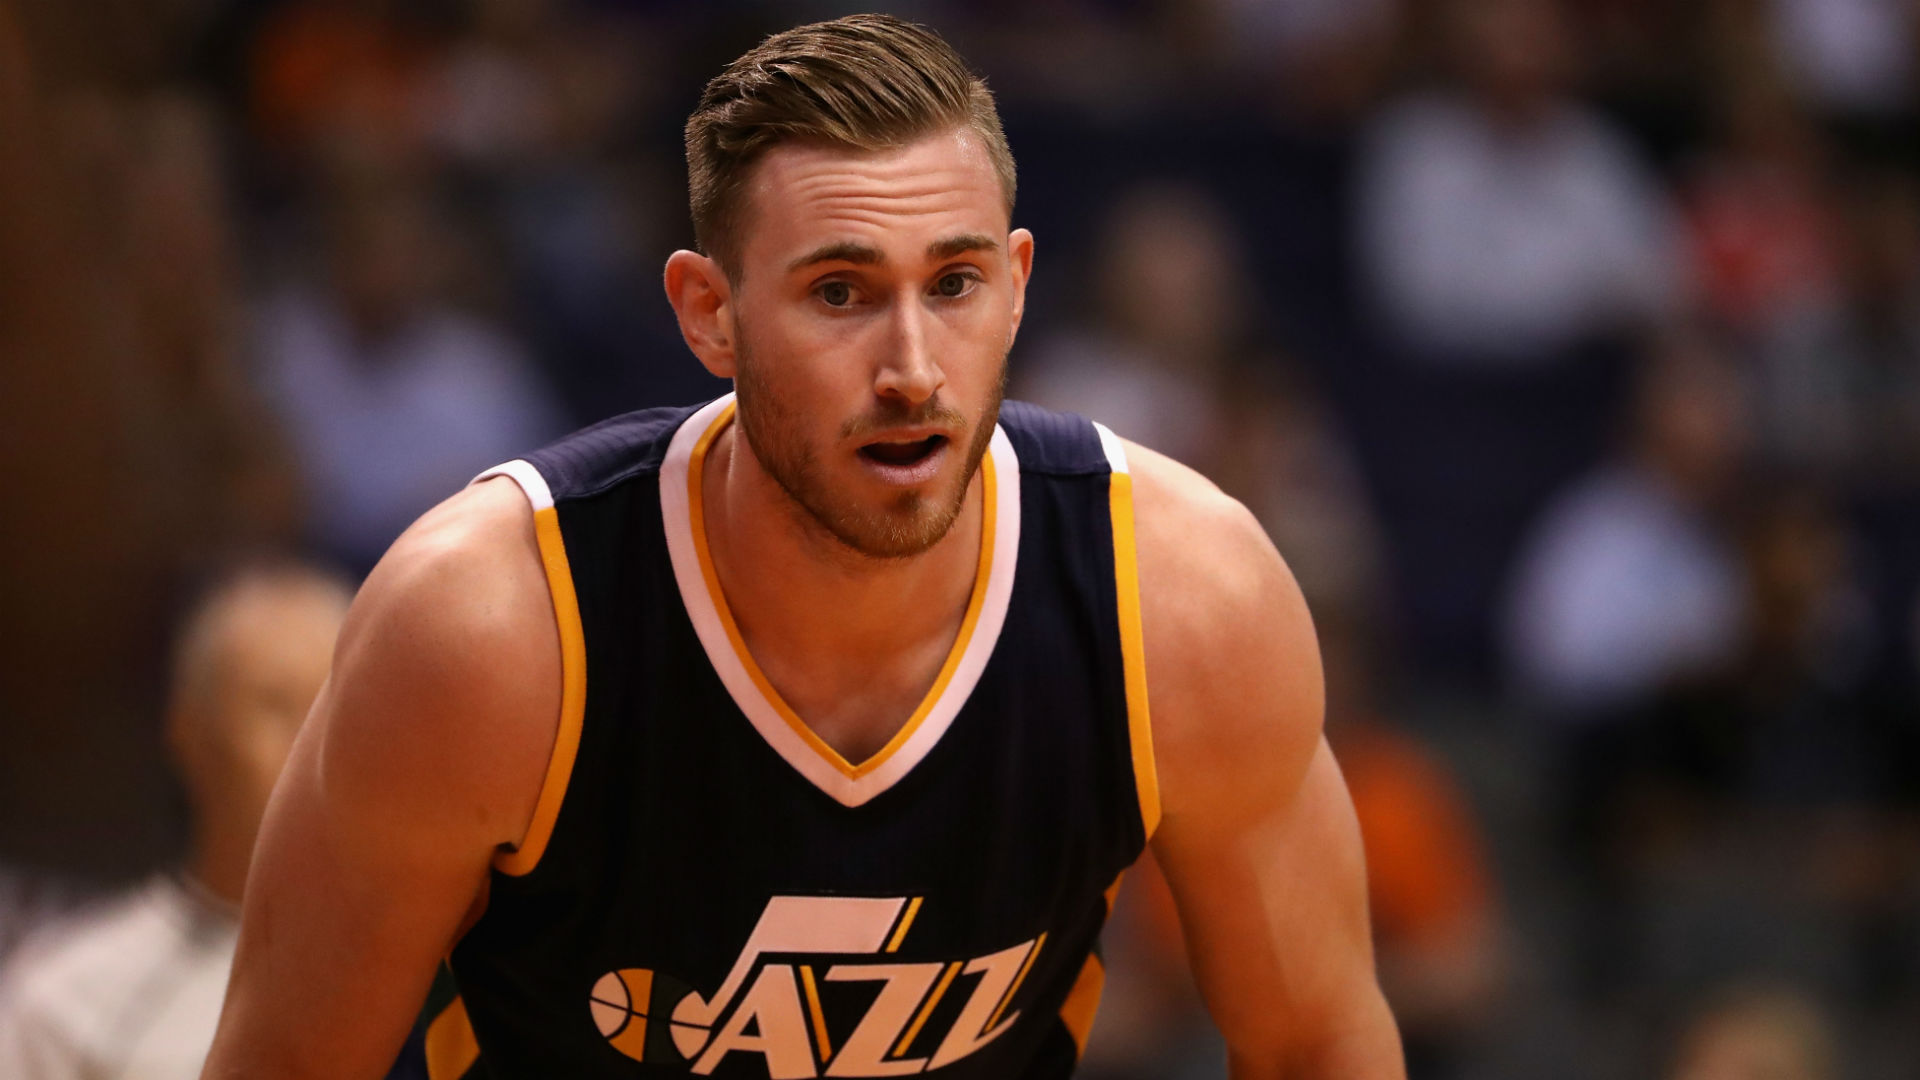 gordon hayward widescreen desktop wallpaper 453